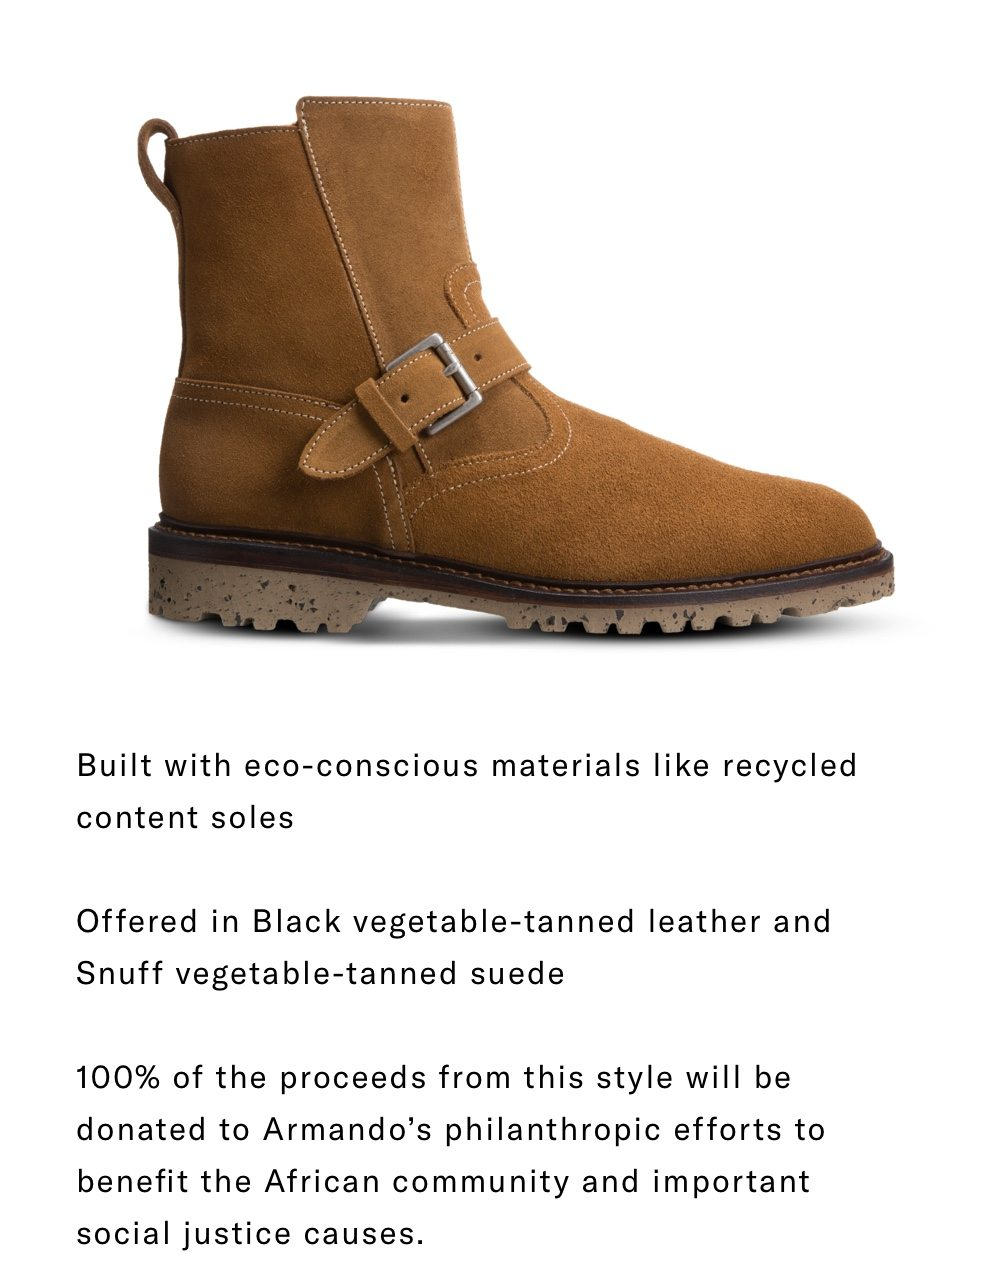 Limited Edition Discovery Moto Boot by Armando Cabral